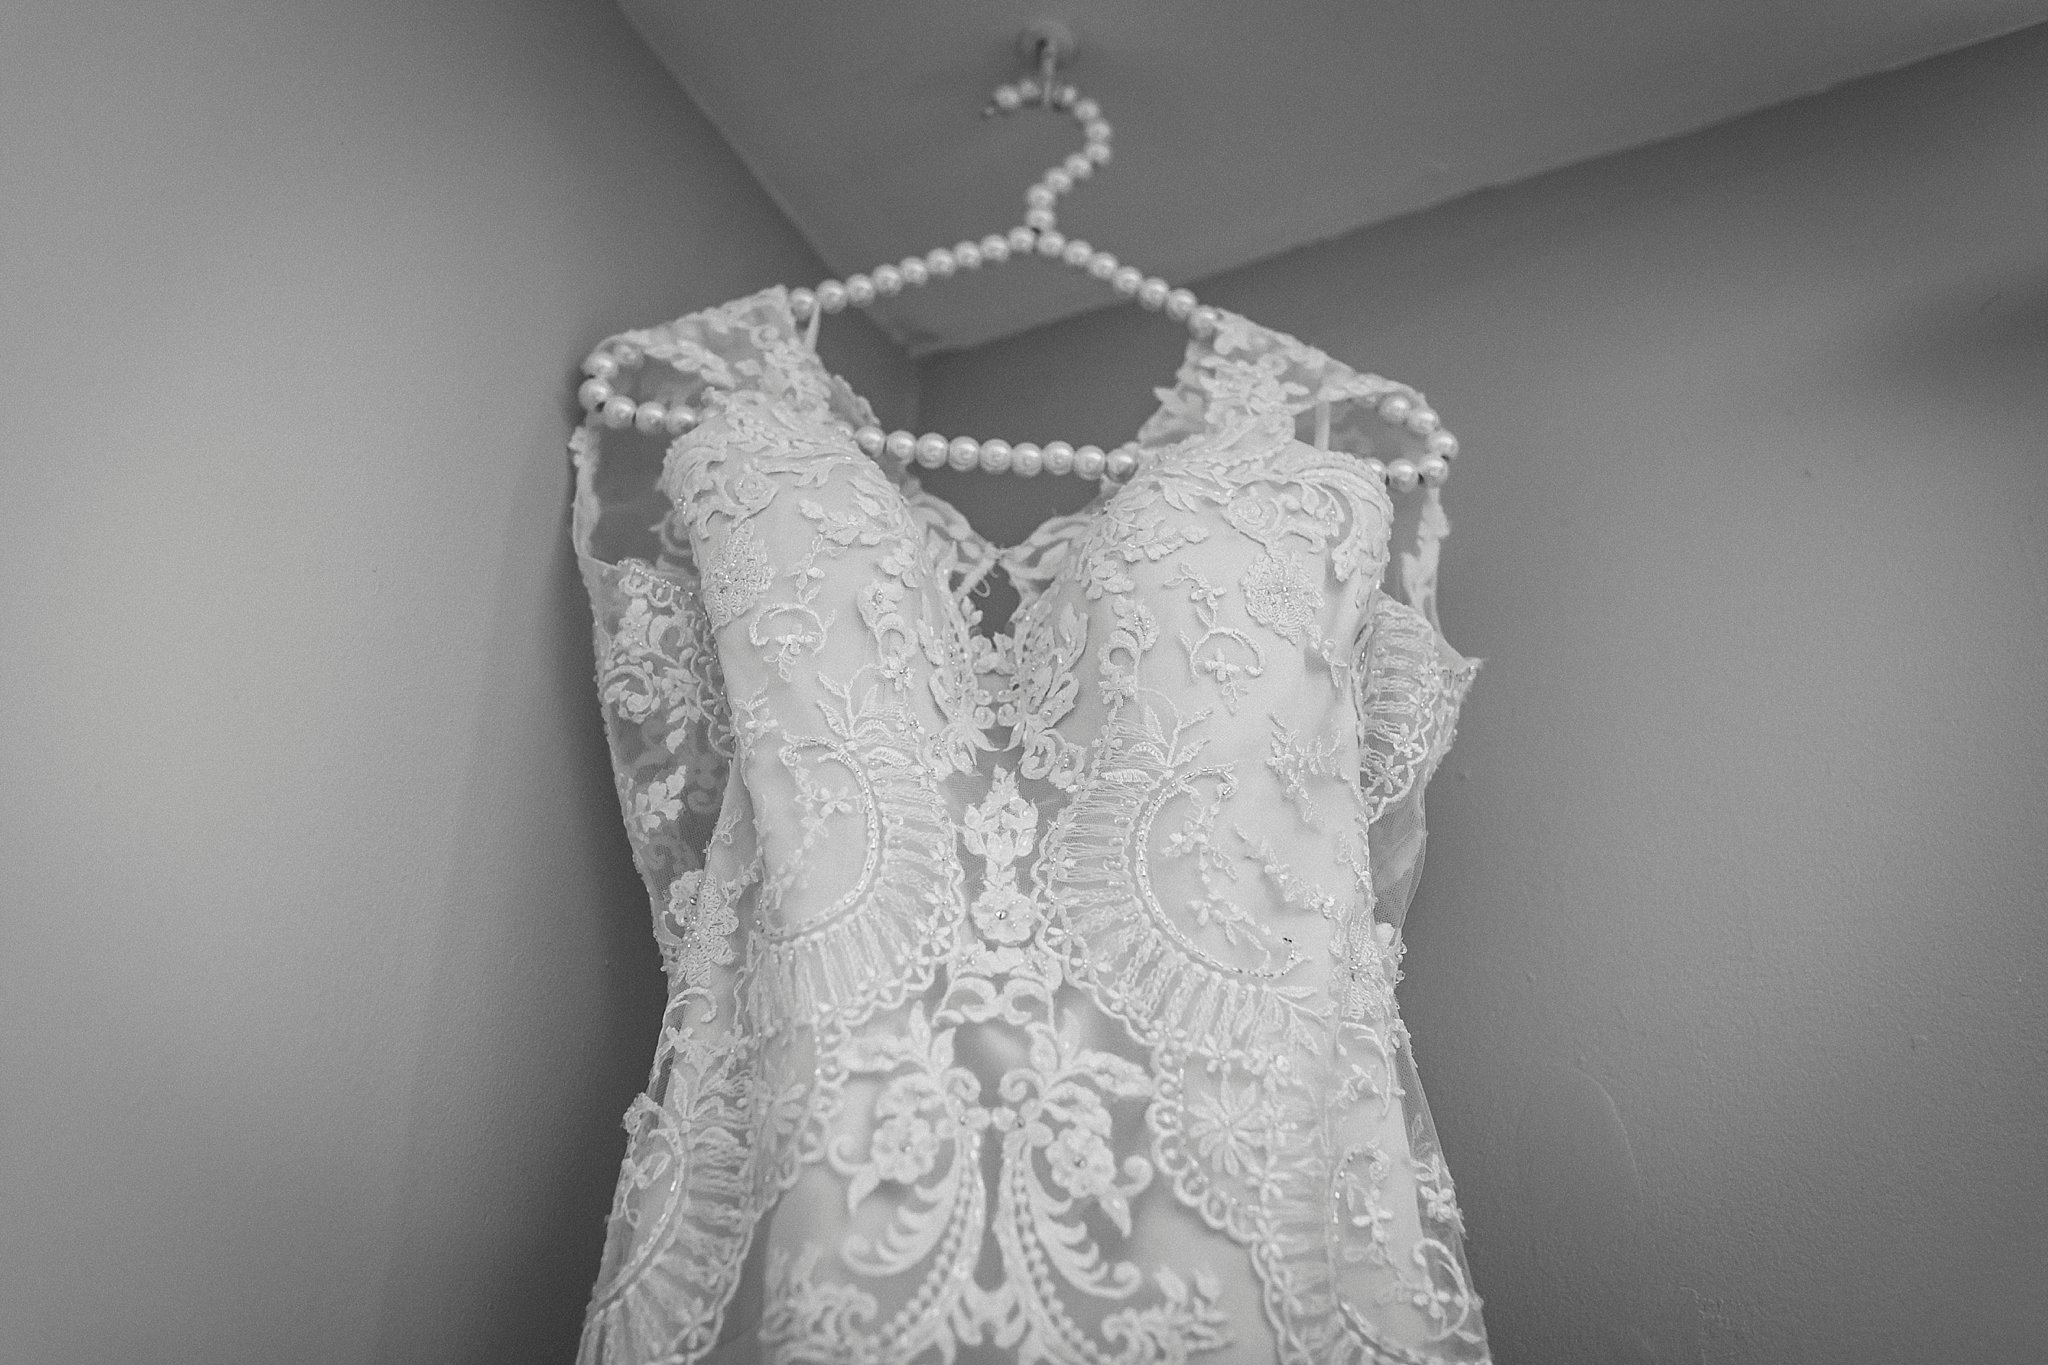 Casablanca Bridal Wedding dress hangs in the corner before wedding day in St. Johns, Newfoundland